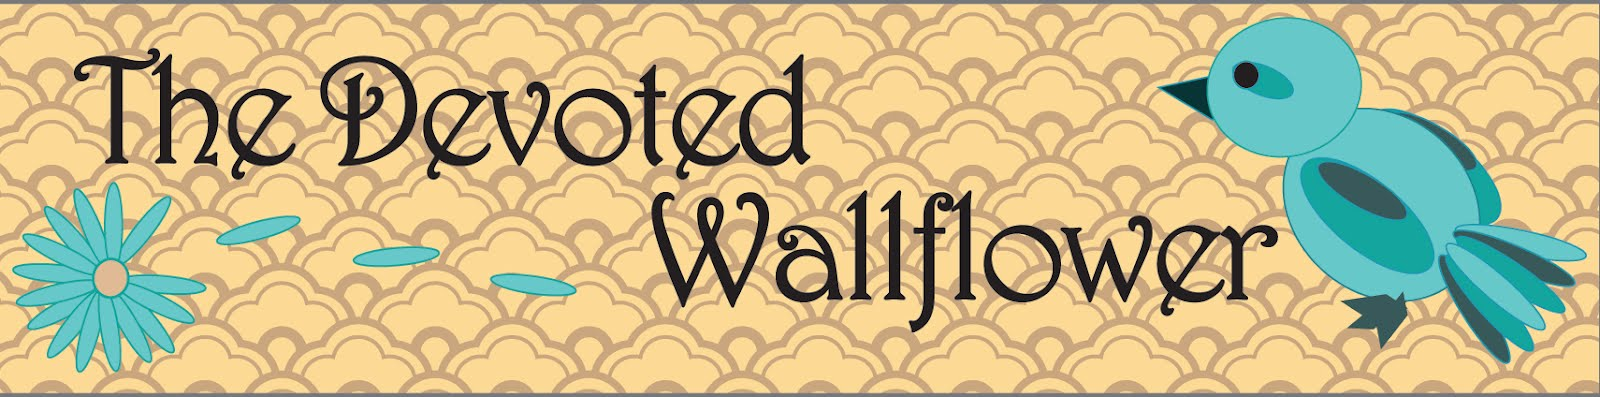 The Devoted Wallflower